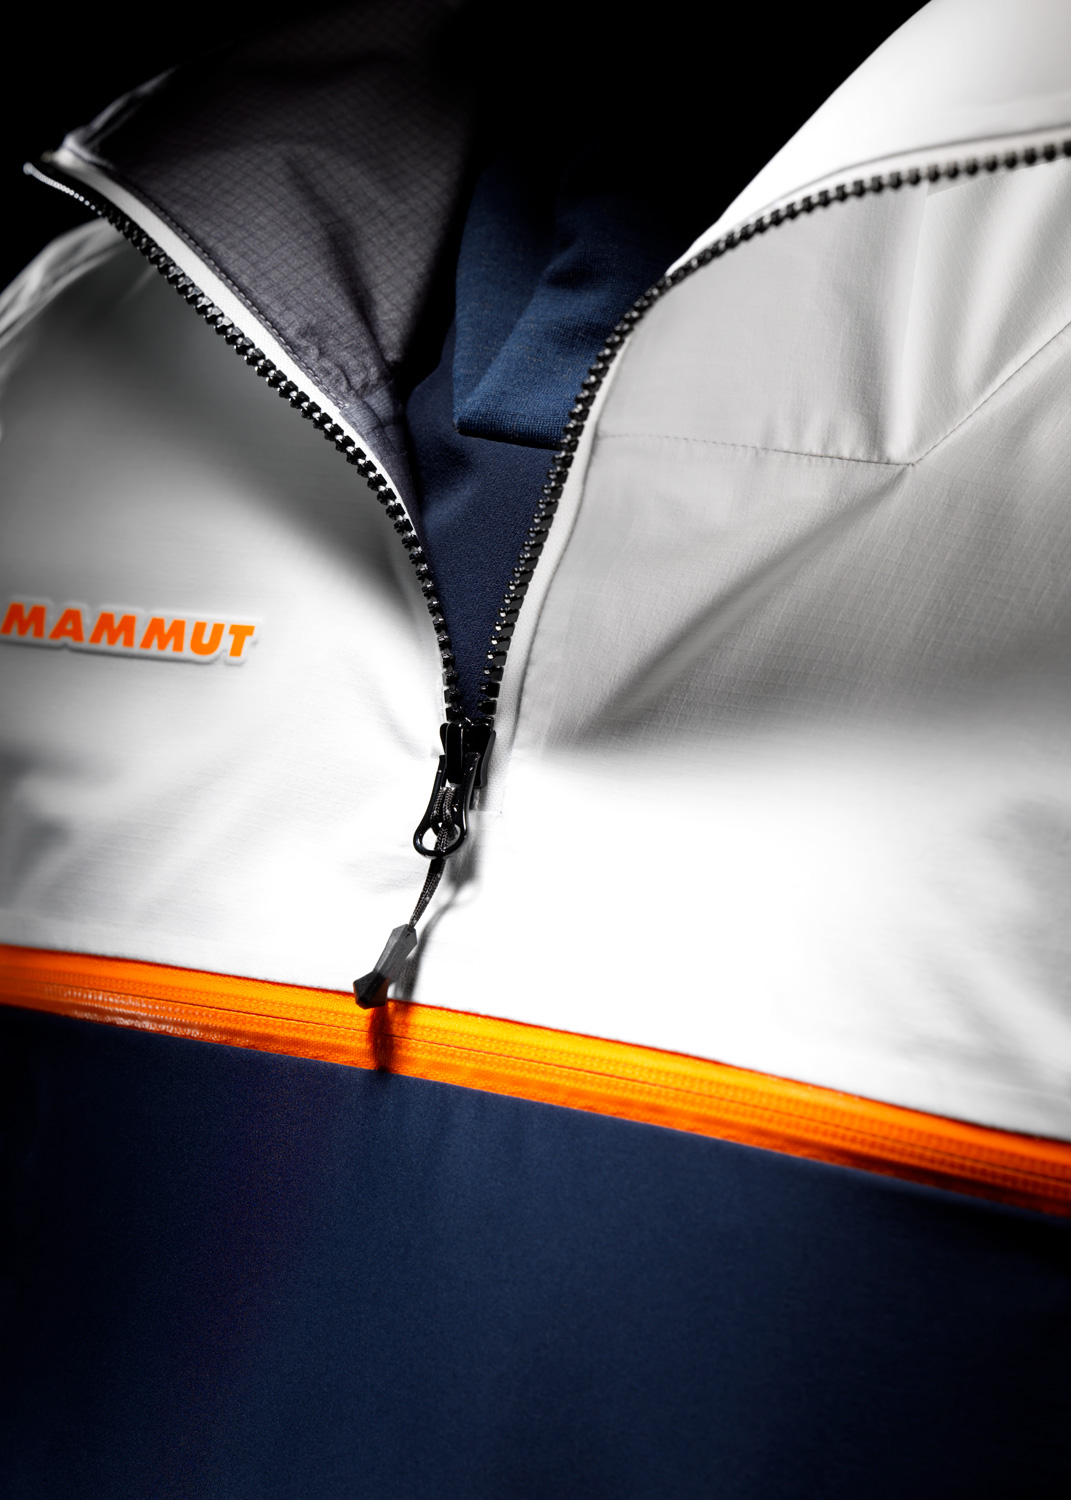 Mammut_Halo_Outfit_Detail_4_DL